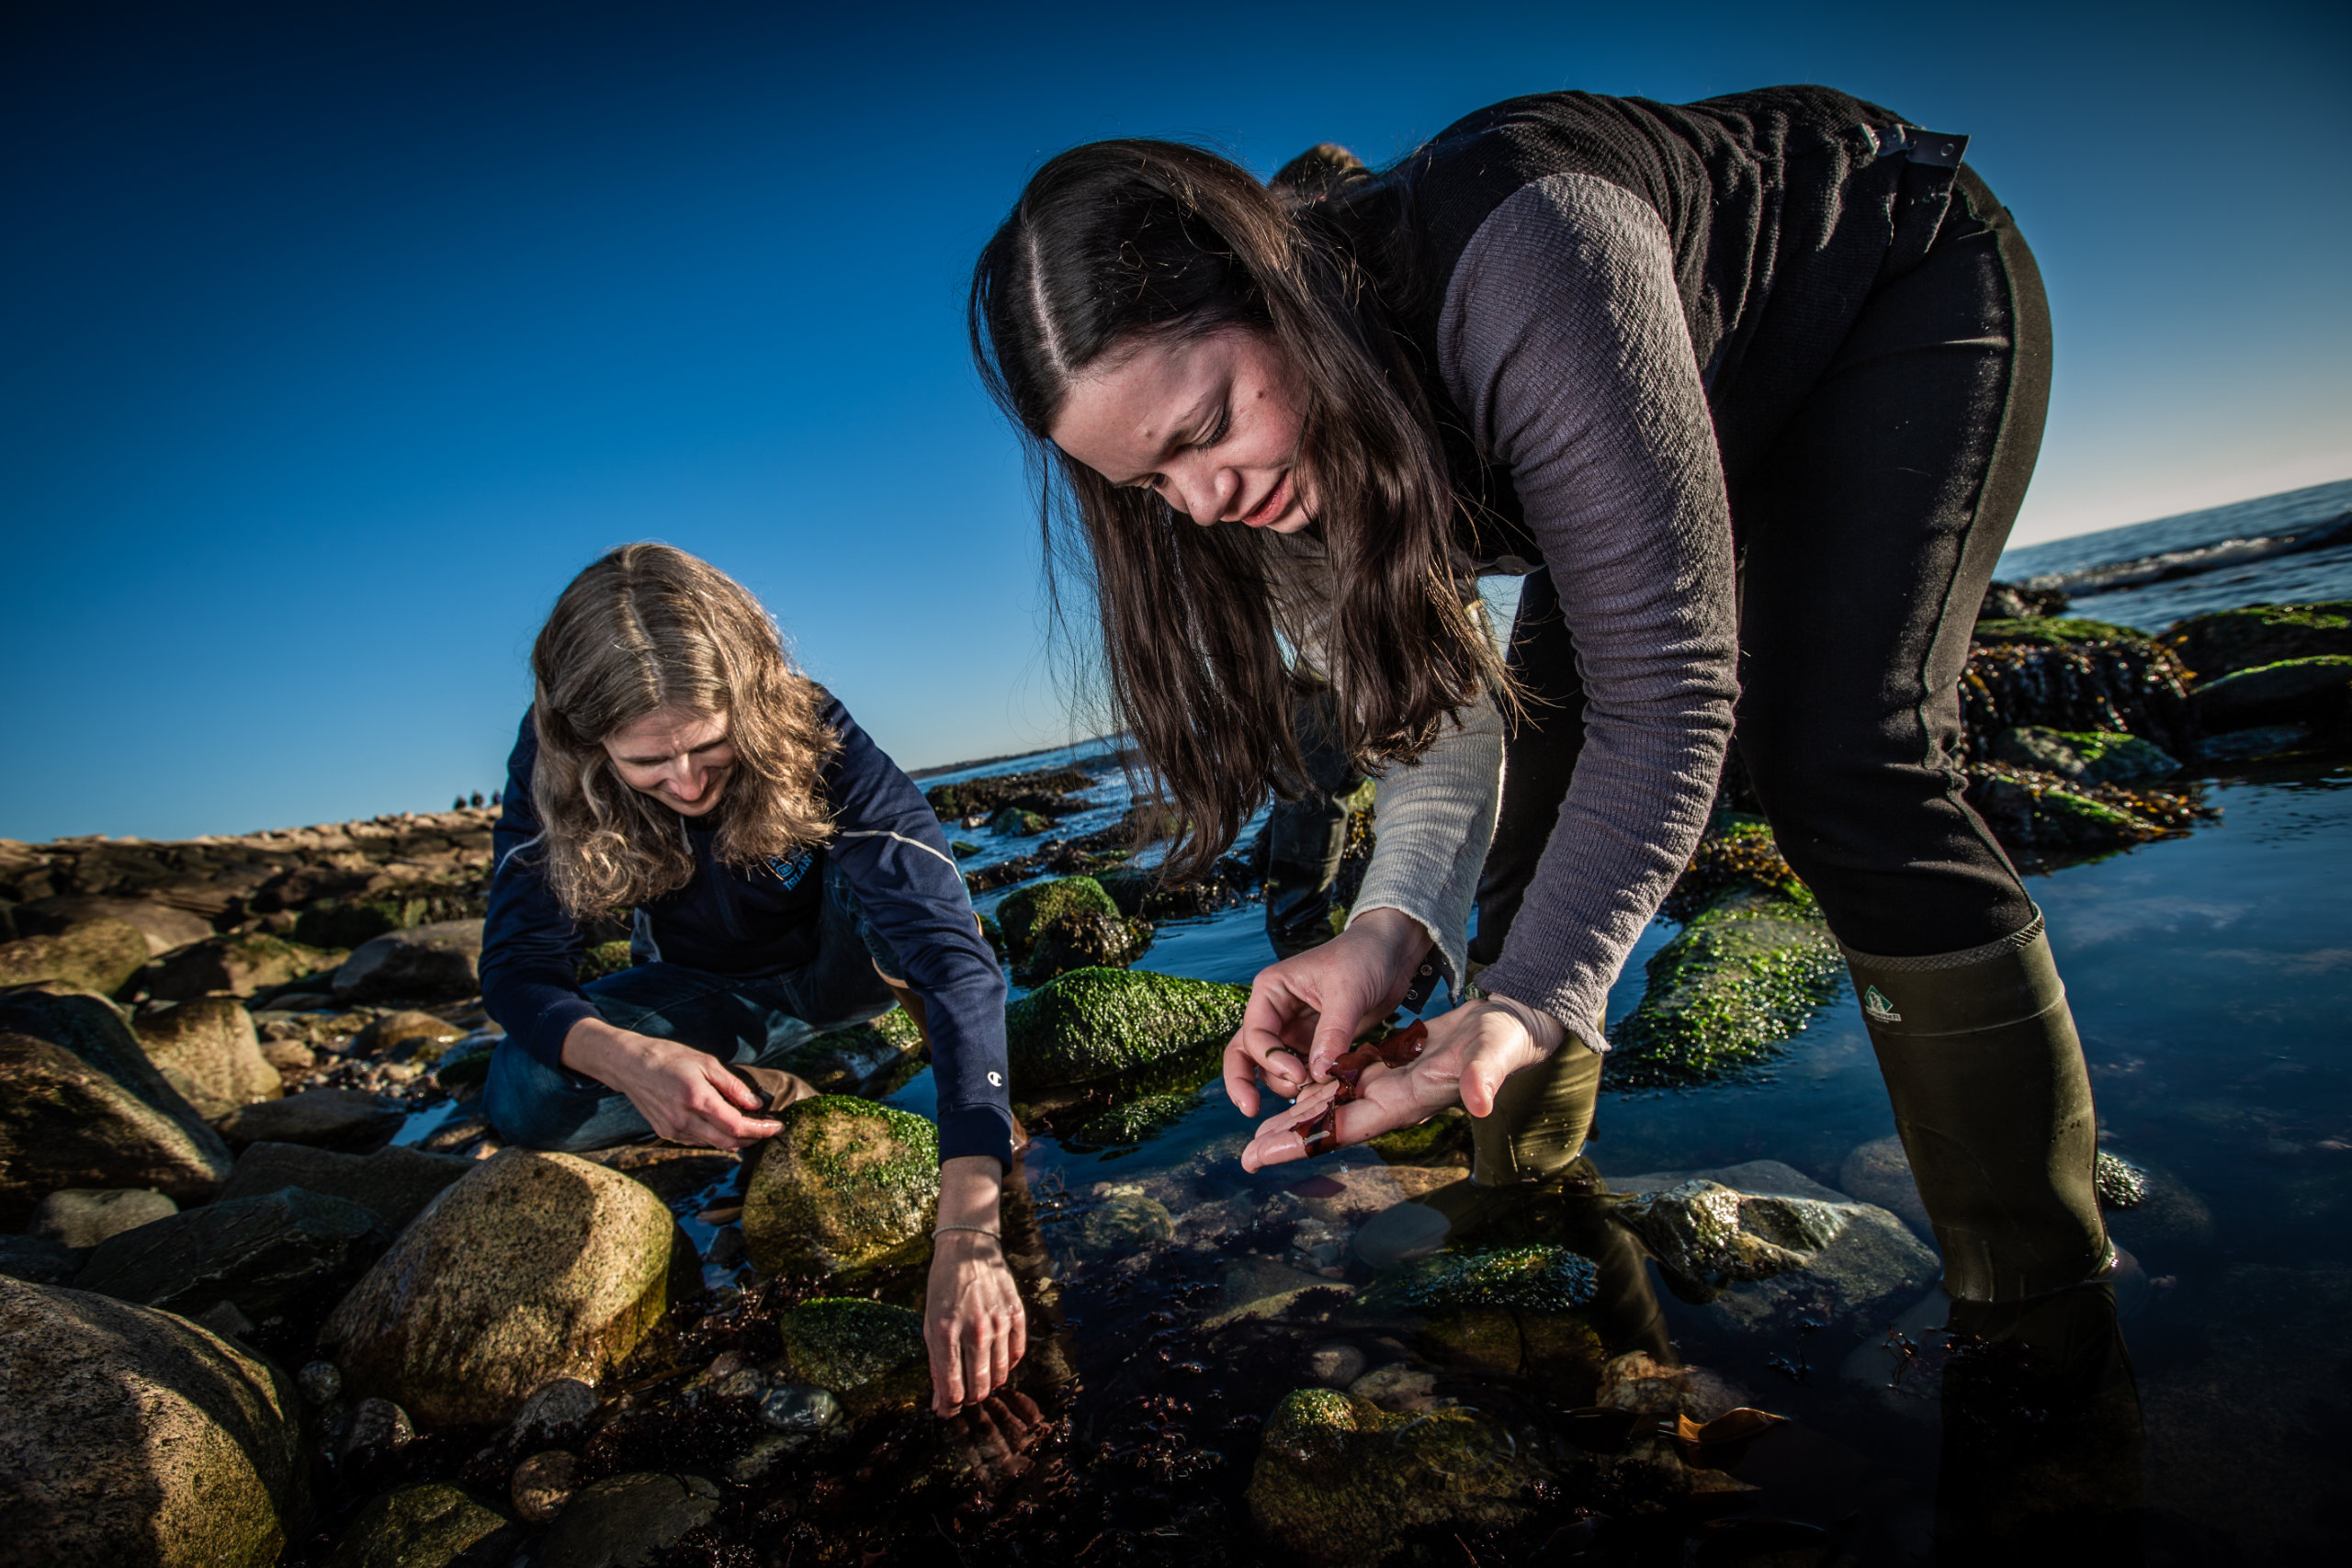 Carol Thornber and Lindsay Green-Gavrielidis search for marine invasive species in the intertidal zone.